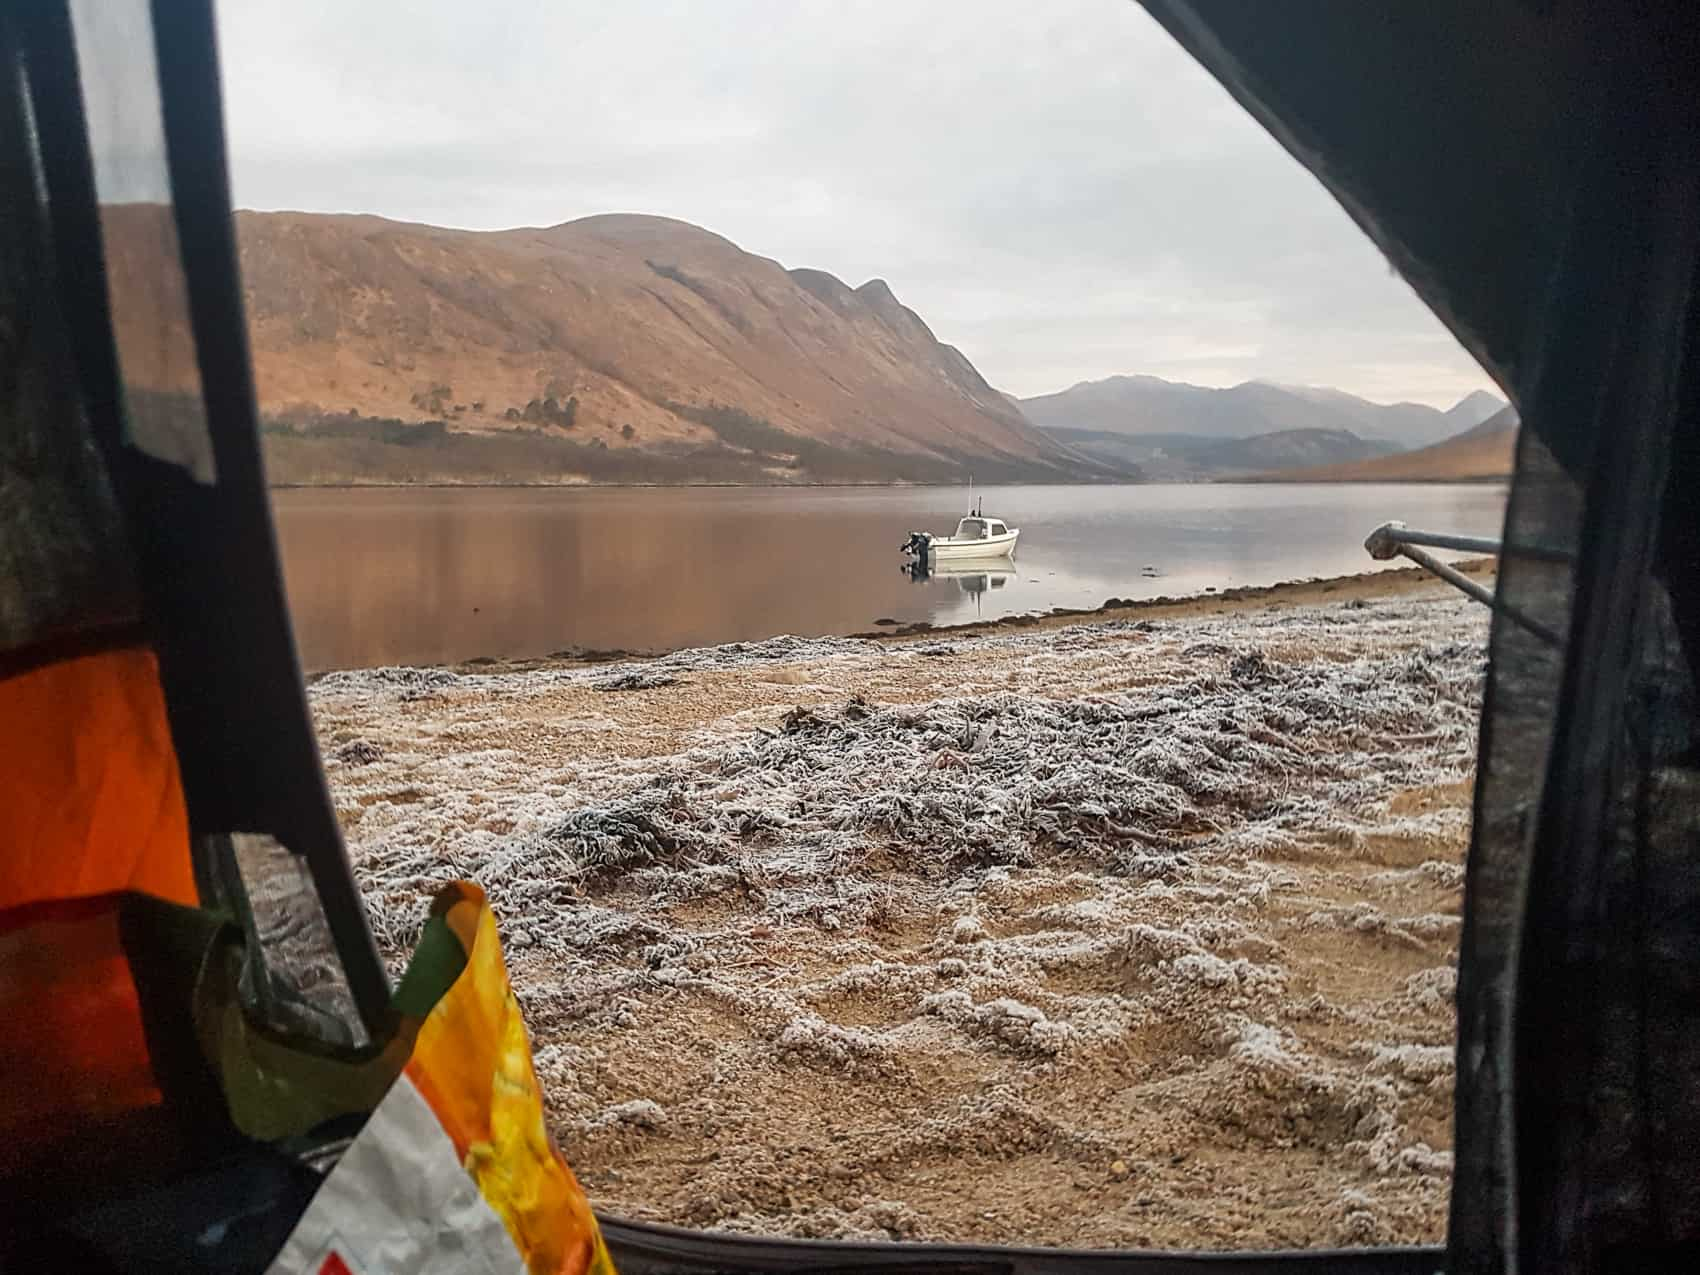 Peeking out from my tent on a cold and frosty January morning, looking north along Loch Etive towards the mountains of Glencoe